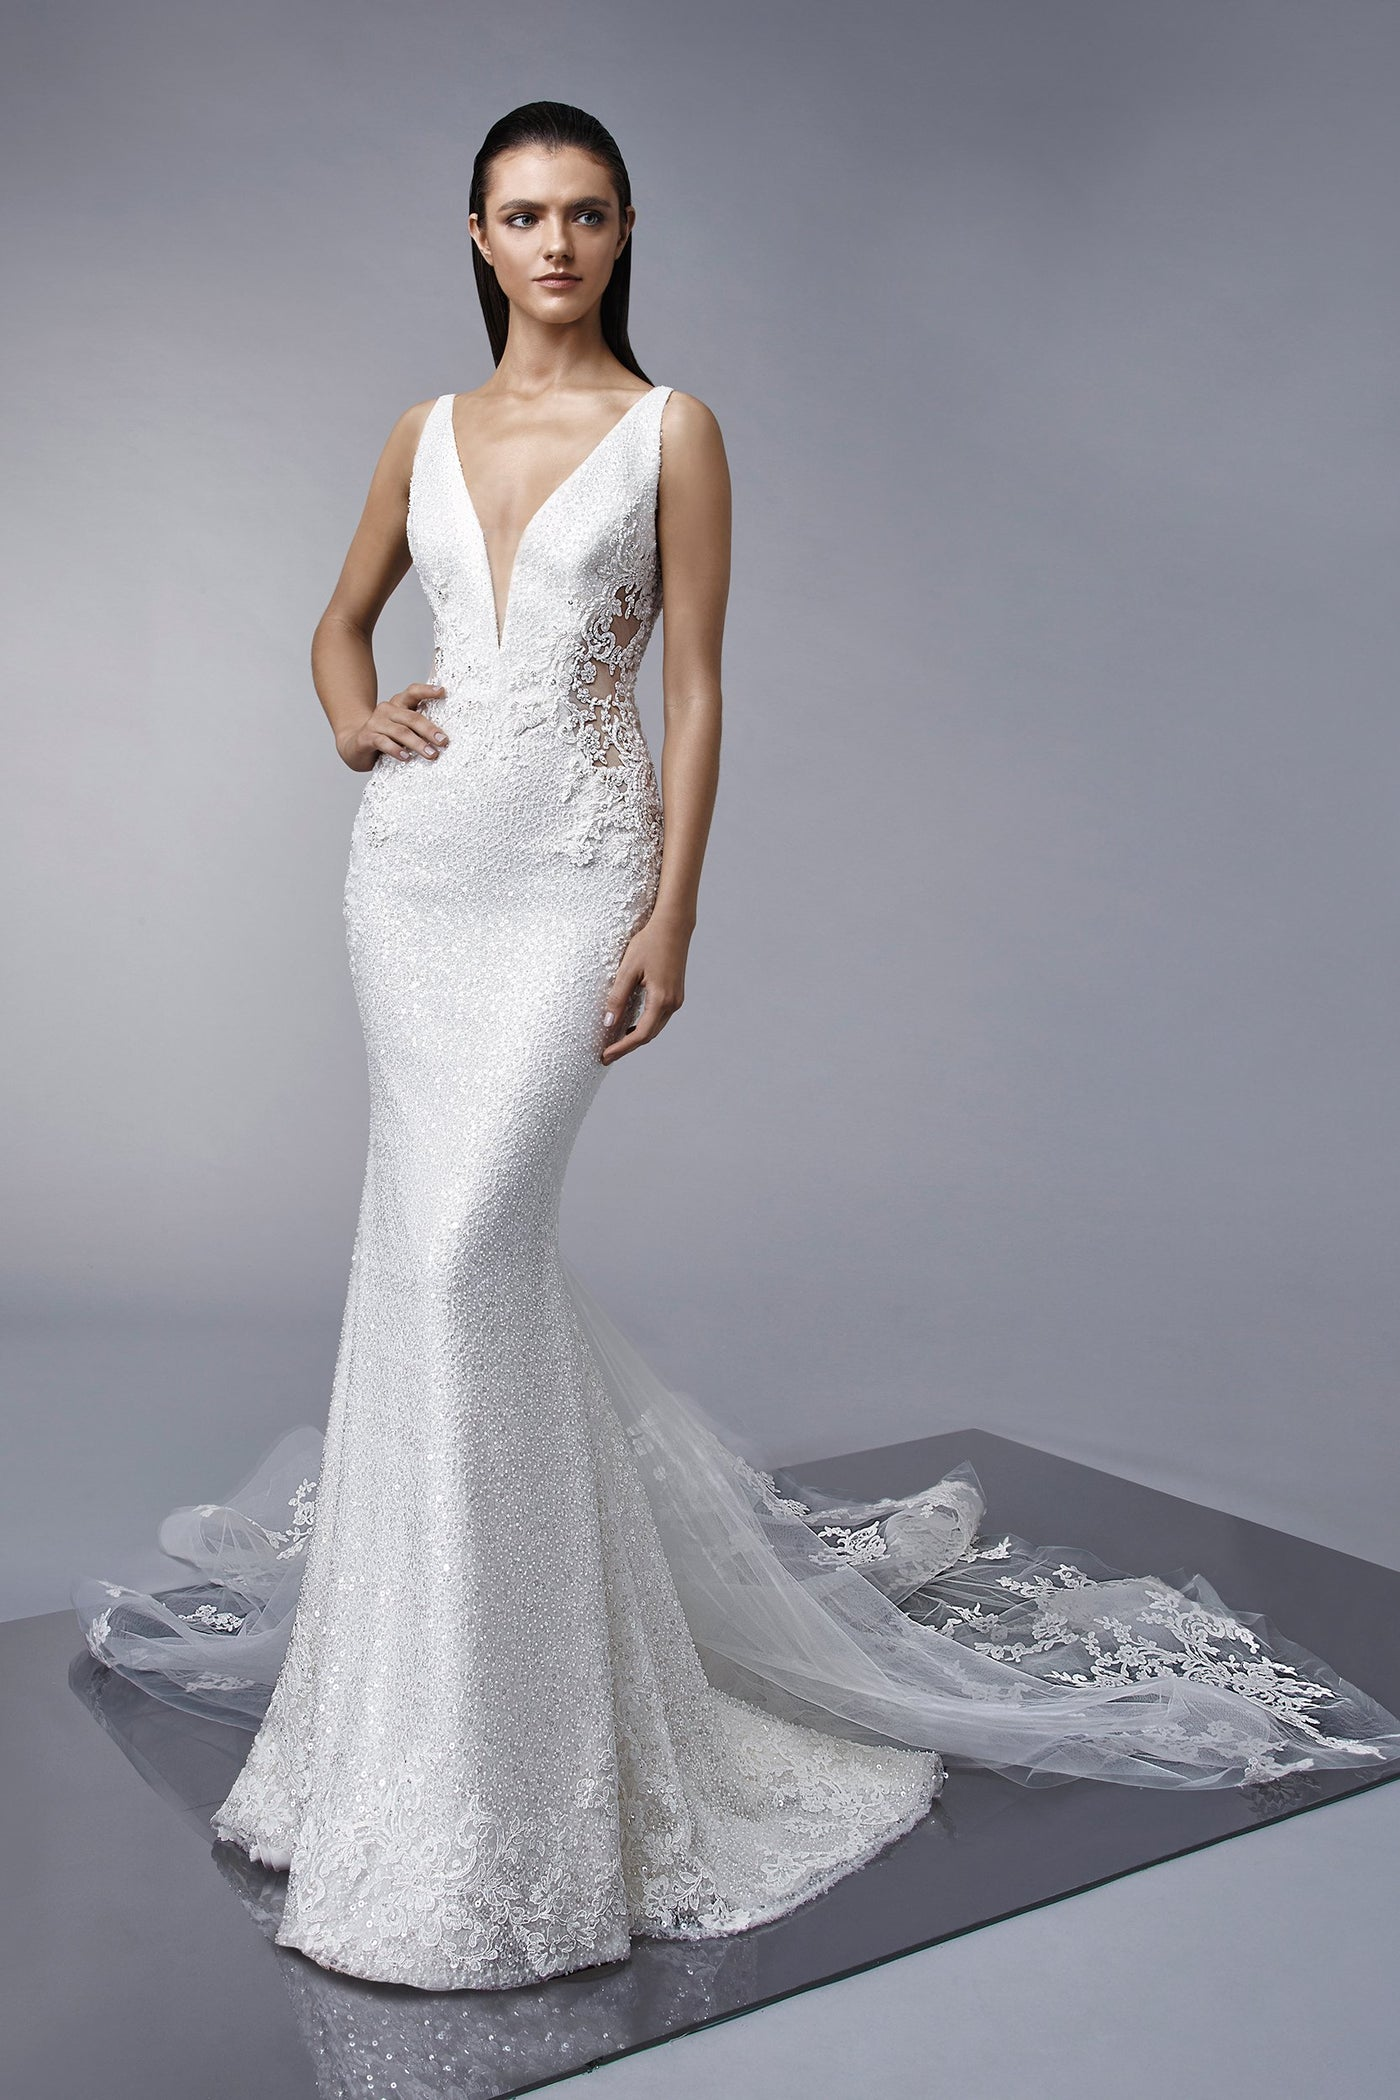 Miley - Sample Gown, Online Sample Sale, Enzoani - Sample Gown - Eternal Bridal